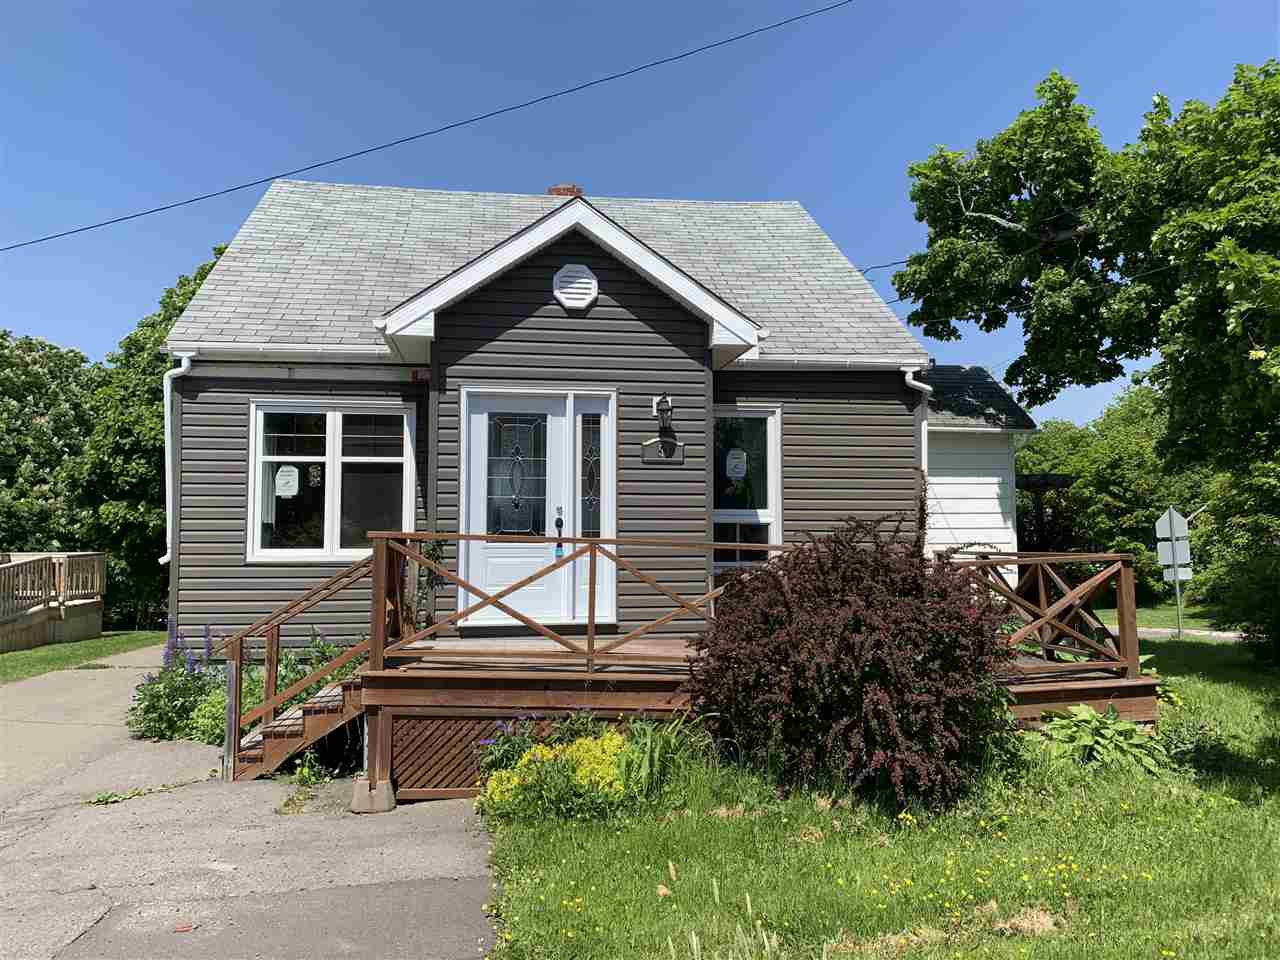 Main Photo: 53 Grandview Avenue in Trenton: 107-Trenton,Westville,Pictou Residential for sale (Northern Region)  : MLS®# 202010046